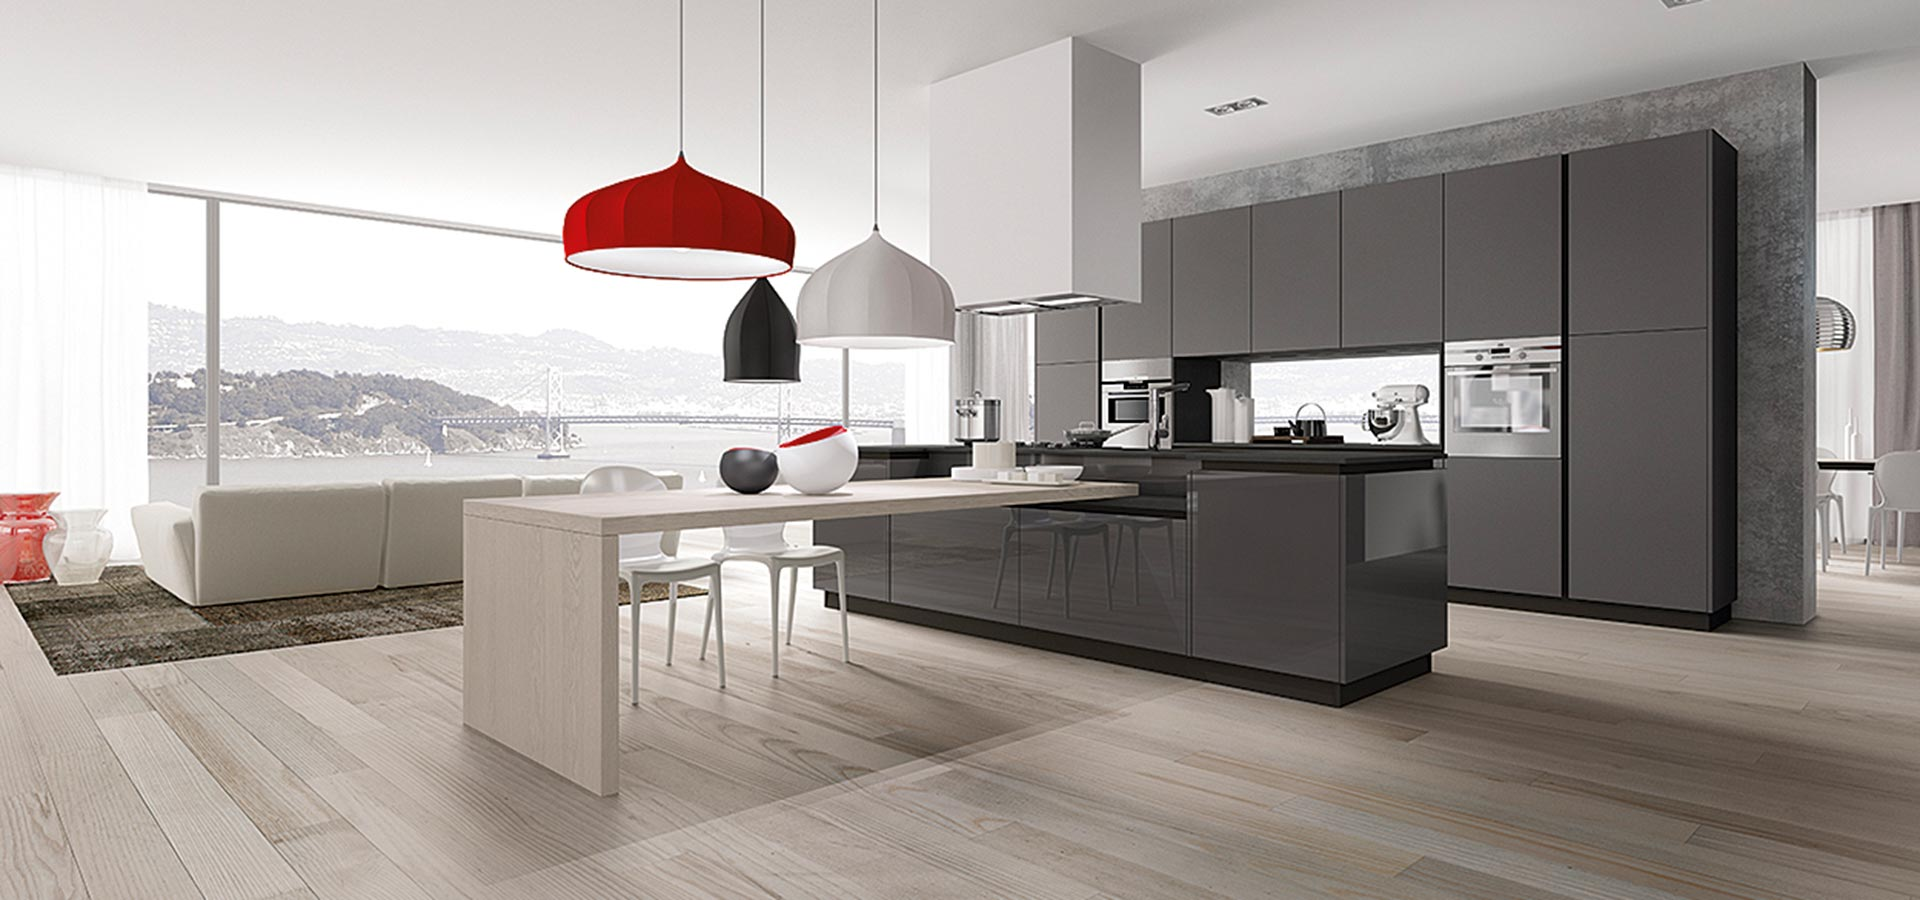 CMC Cucina, Kitchens, Wardrobes, Doors, Cabinets, Cyprus - Home